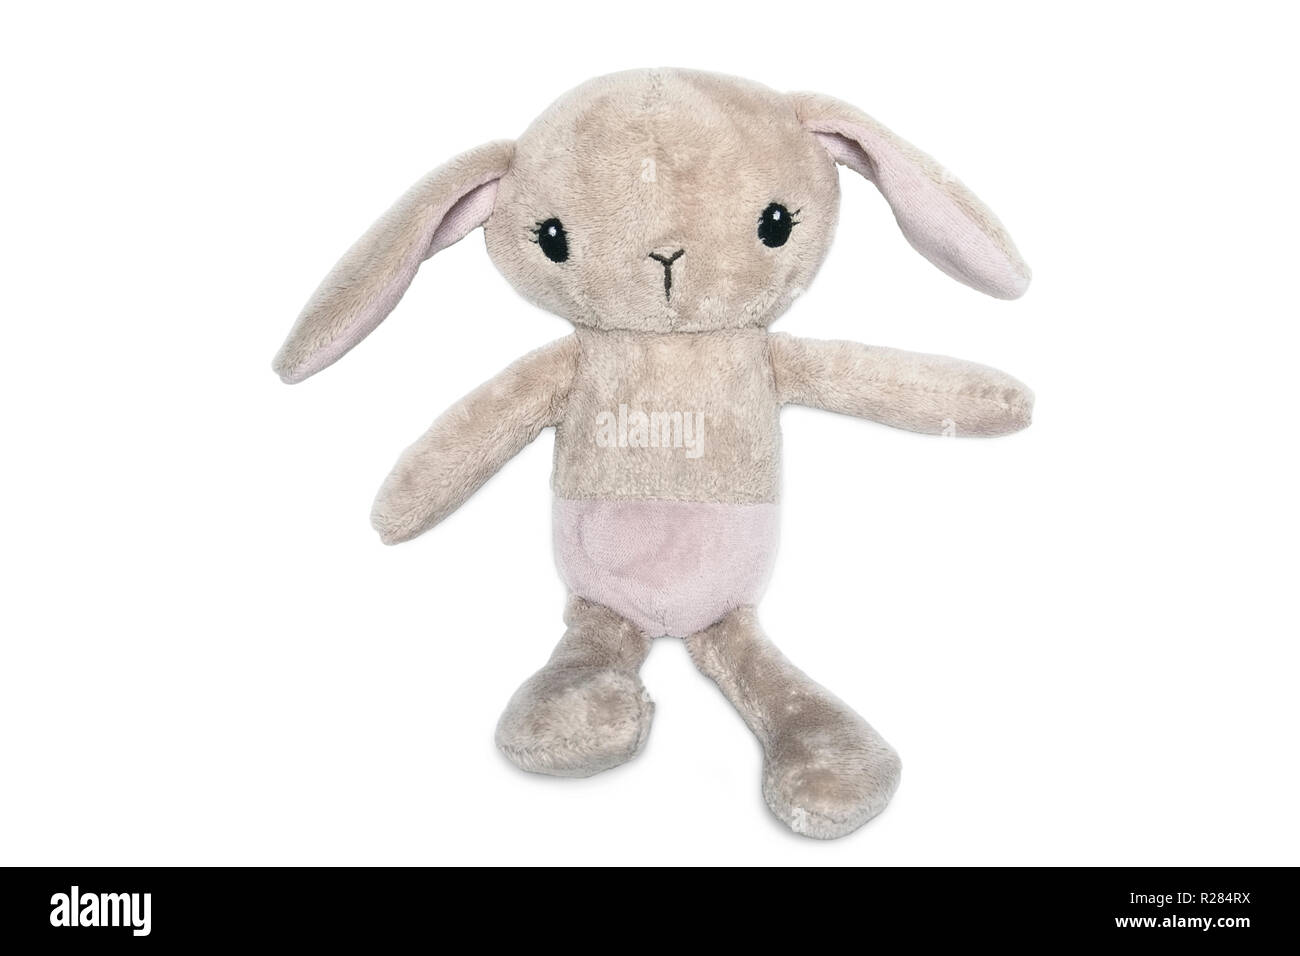 The beige plush rabbit is isolated on a white background - Stock Image